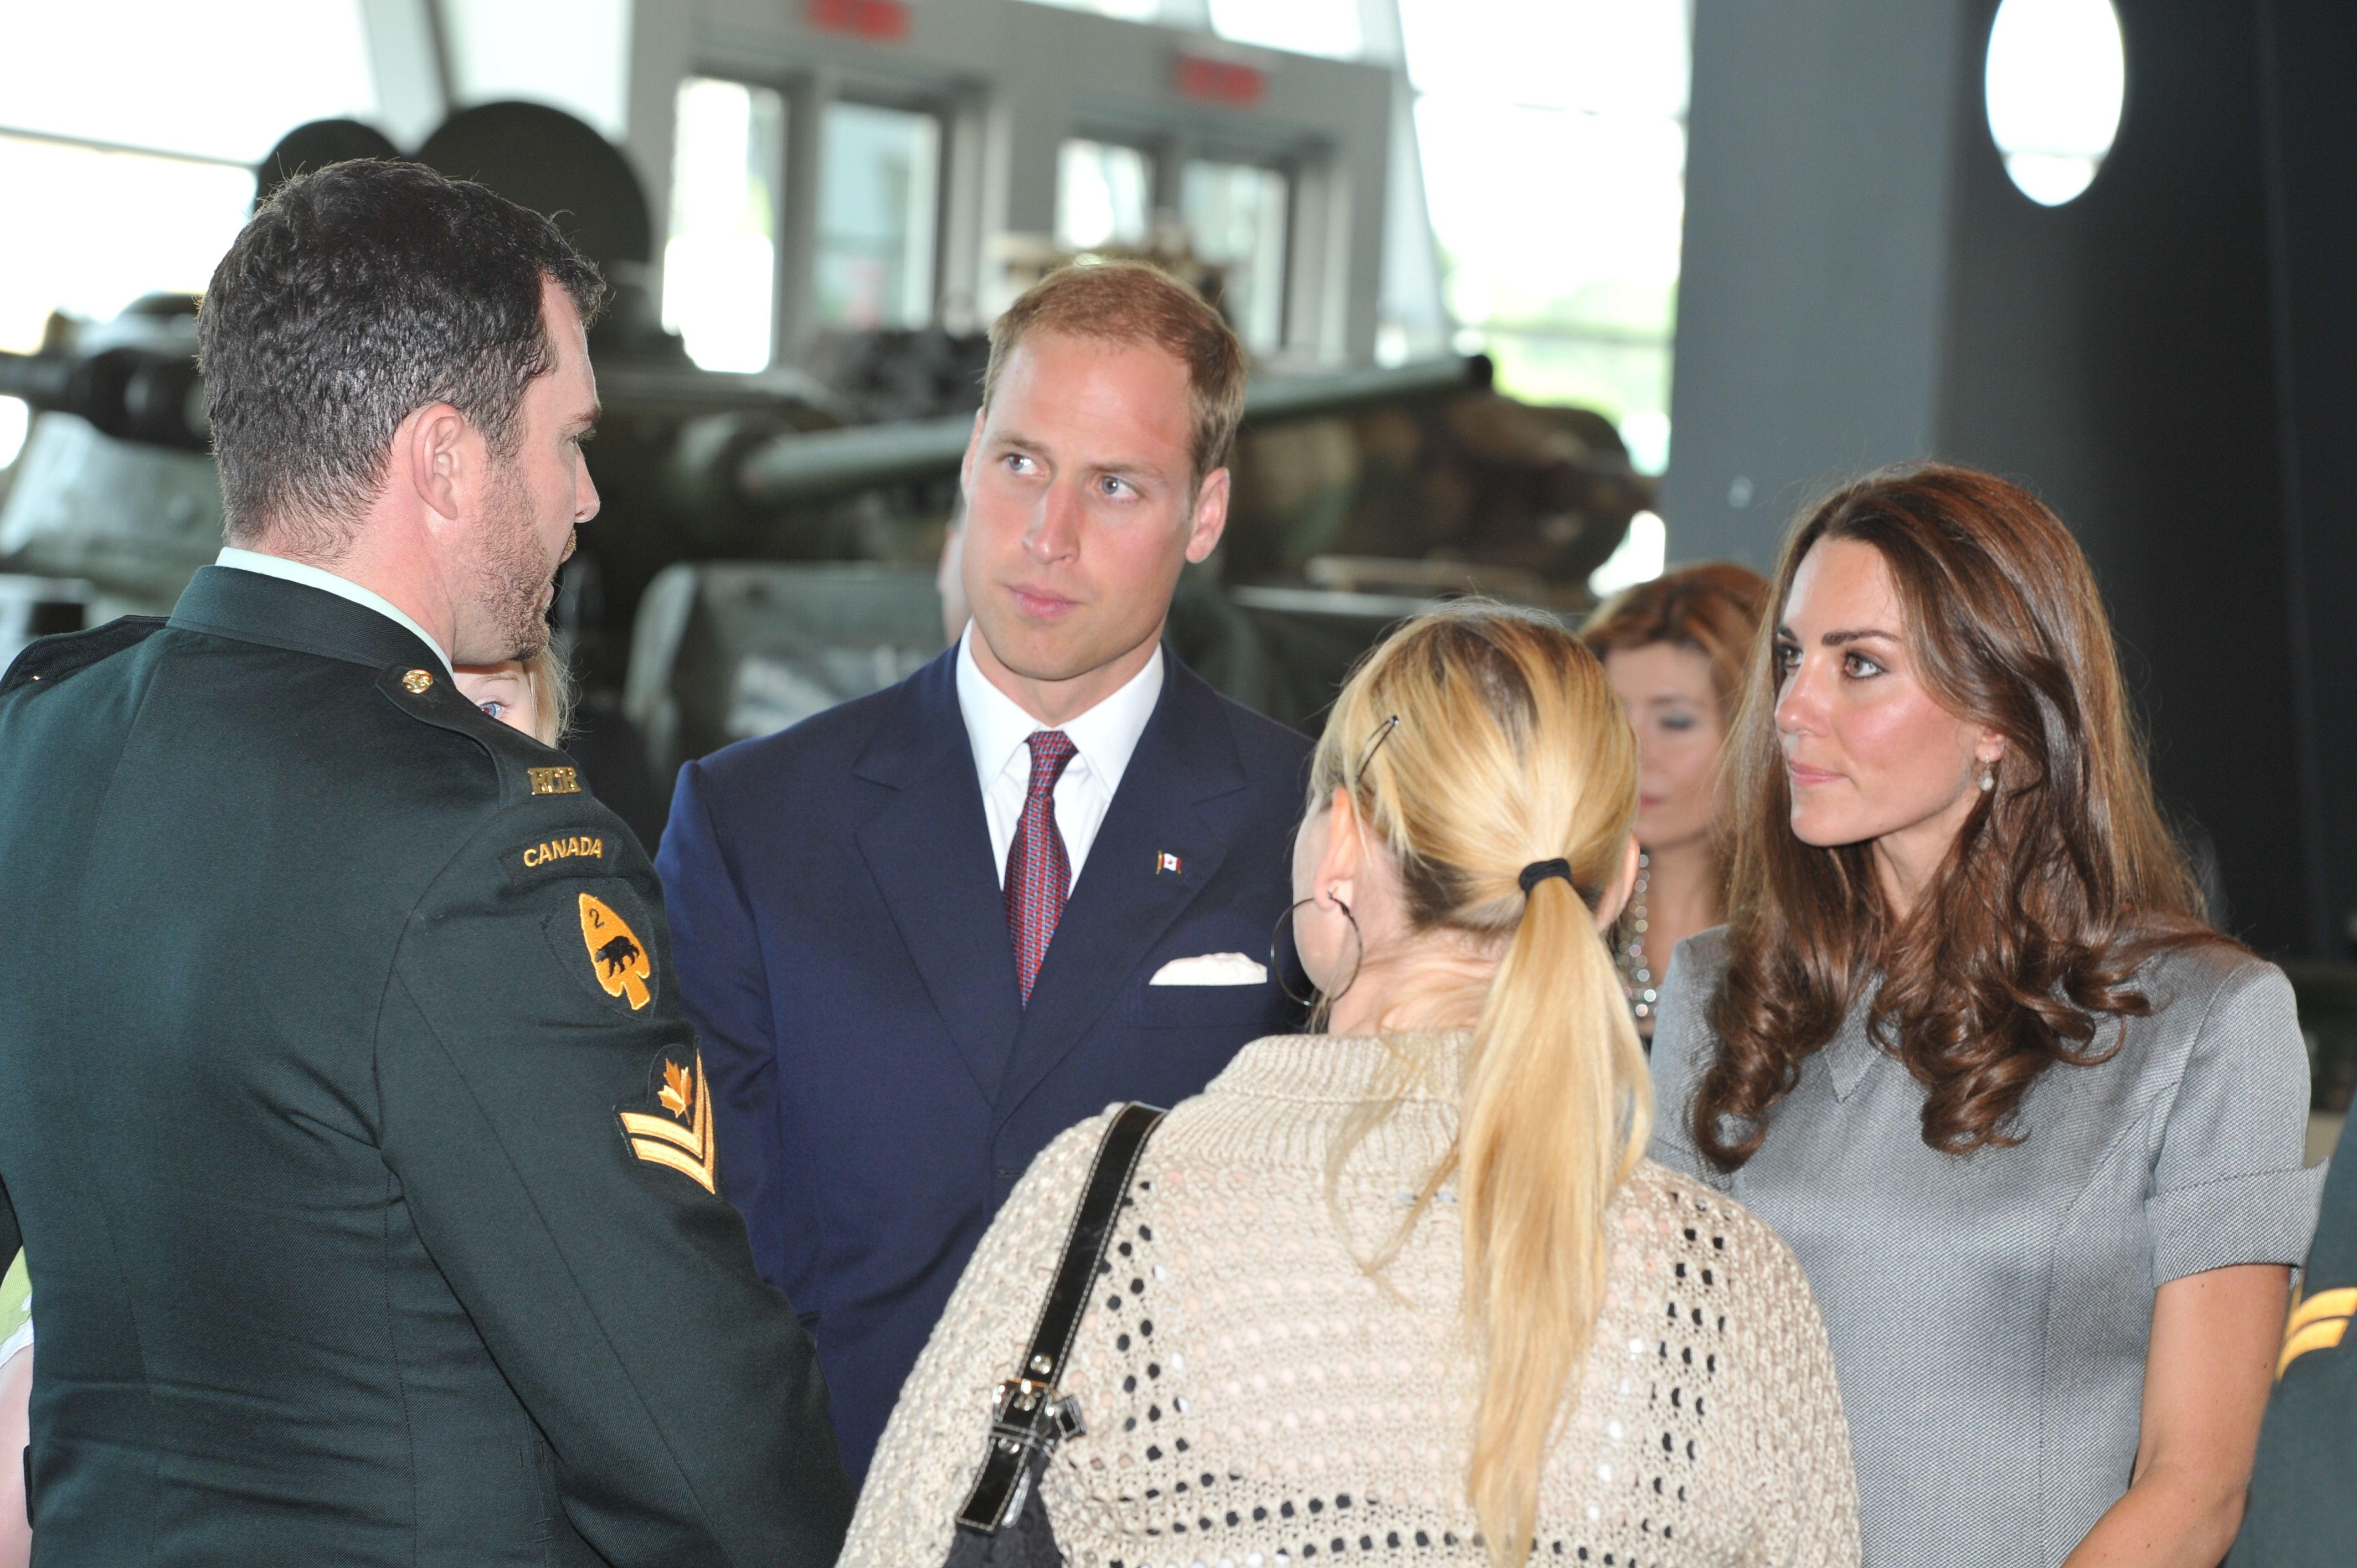 Prince William and Kate Middleton met with members of the Canadian military.